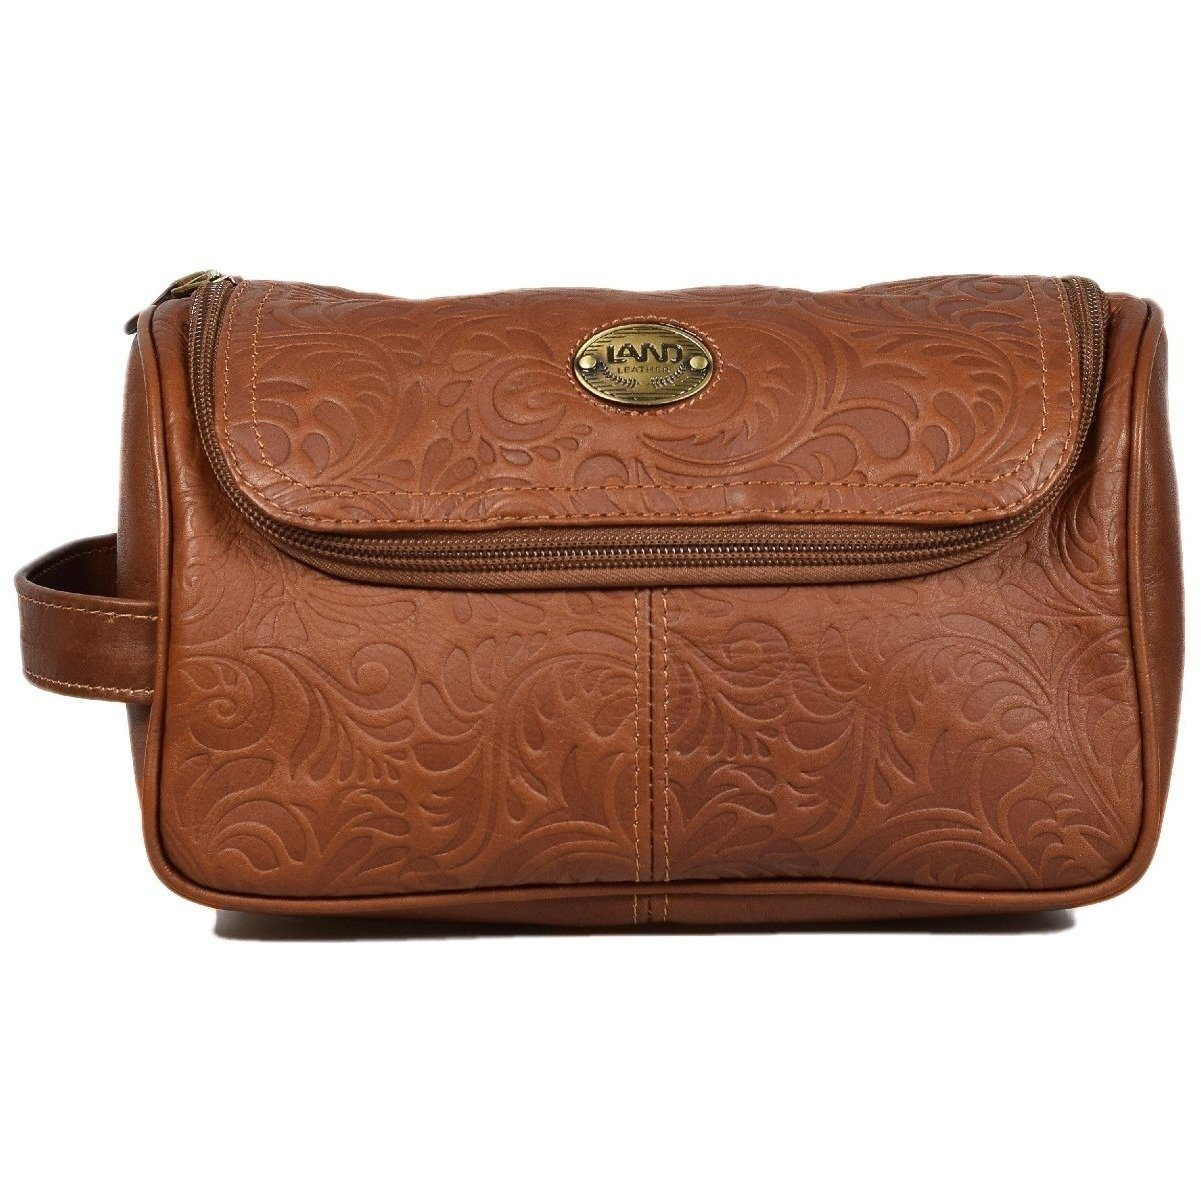 Santa Fe Toiletry Bag, Toiletry Bag | LAND Leather